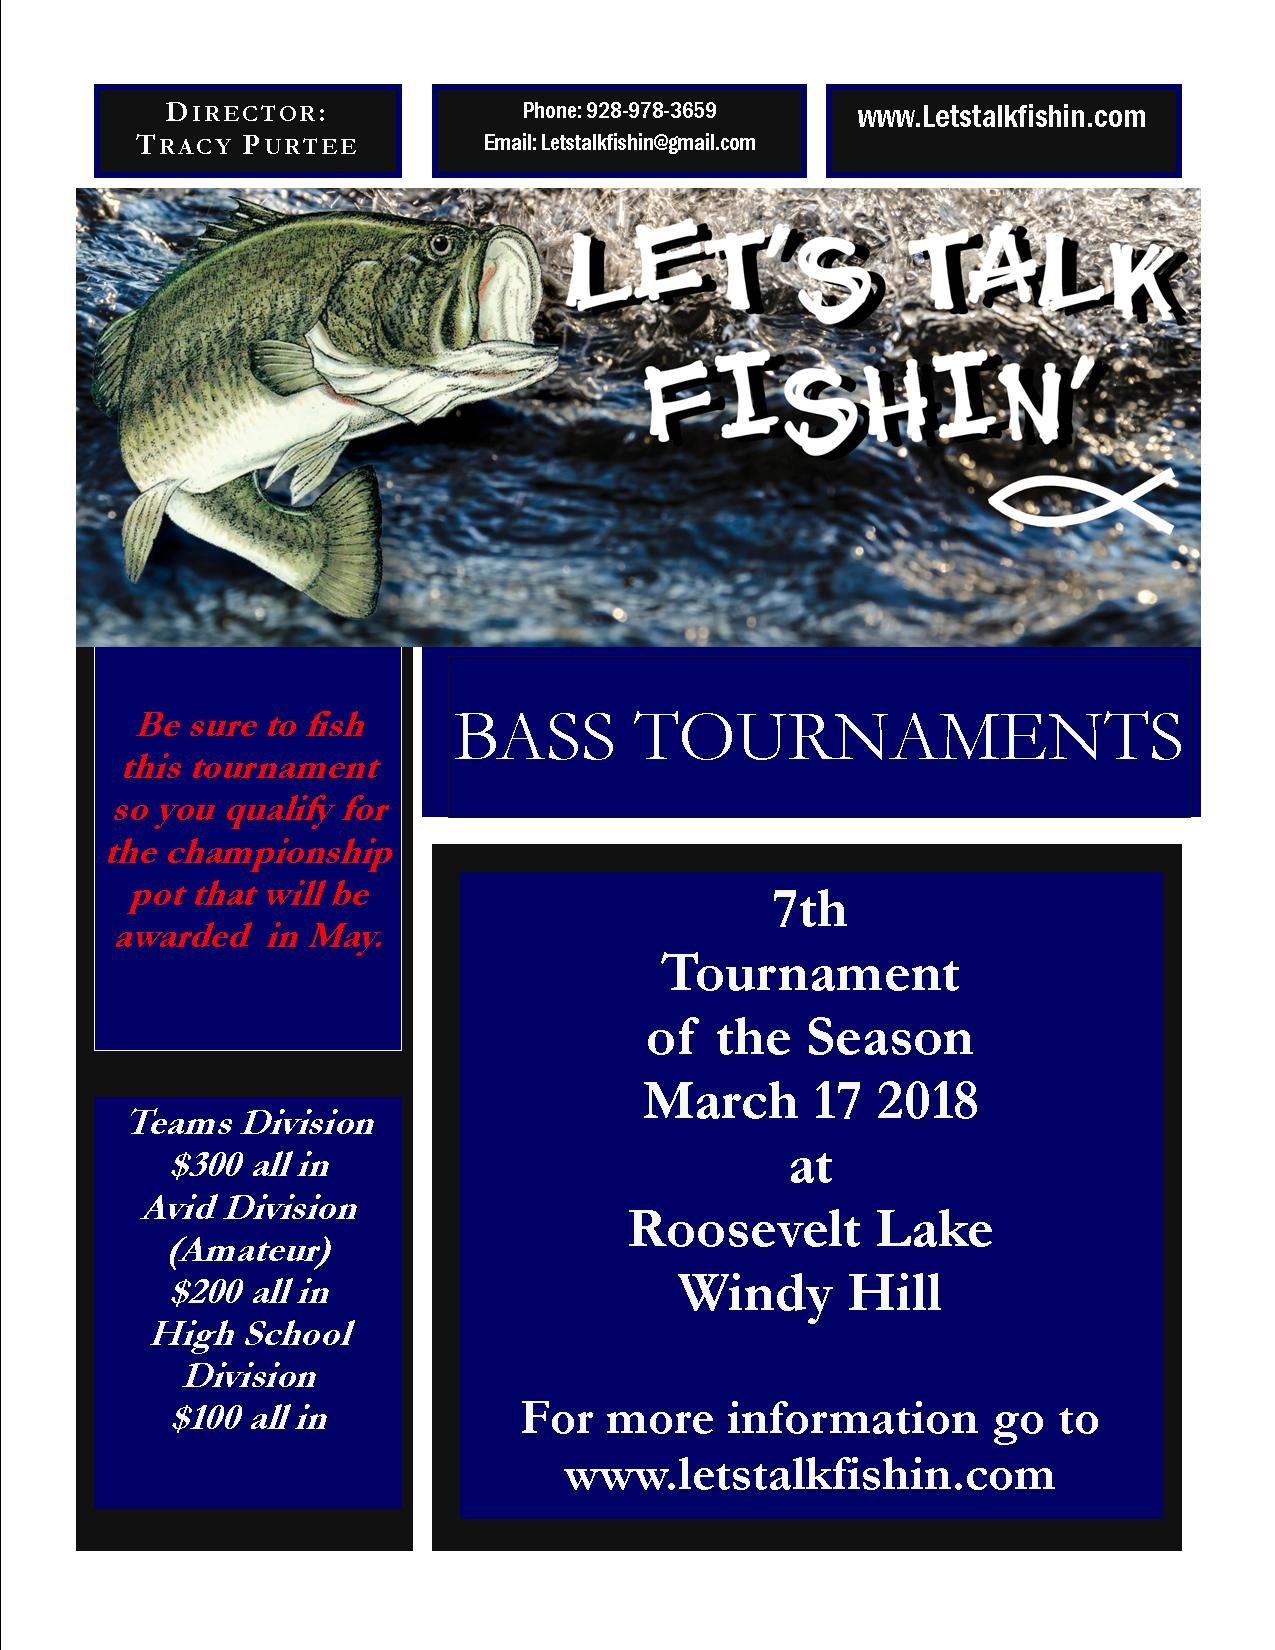 Click image for larger version  Name:7th Tournament.jpg Views:1781 Size:283.6 KB ID:96826